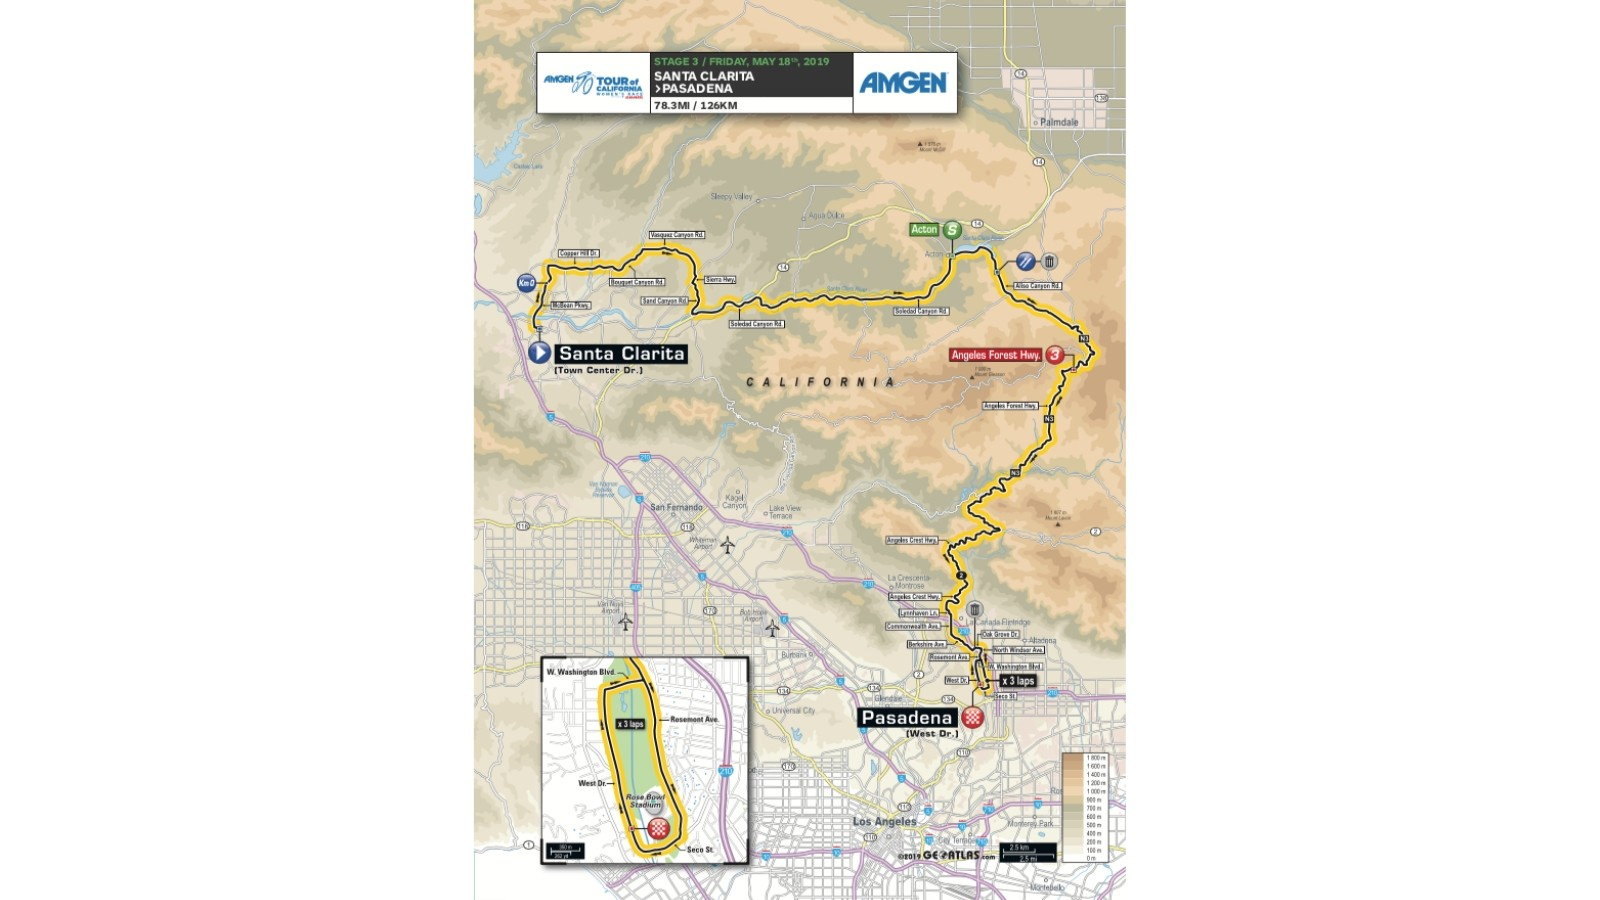 Amgen Tour of California 2019 women's race stage 3 route map